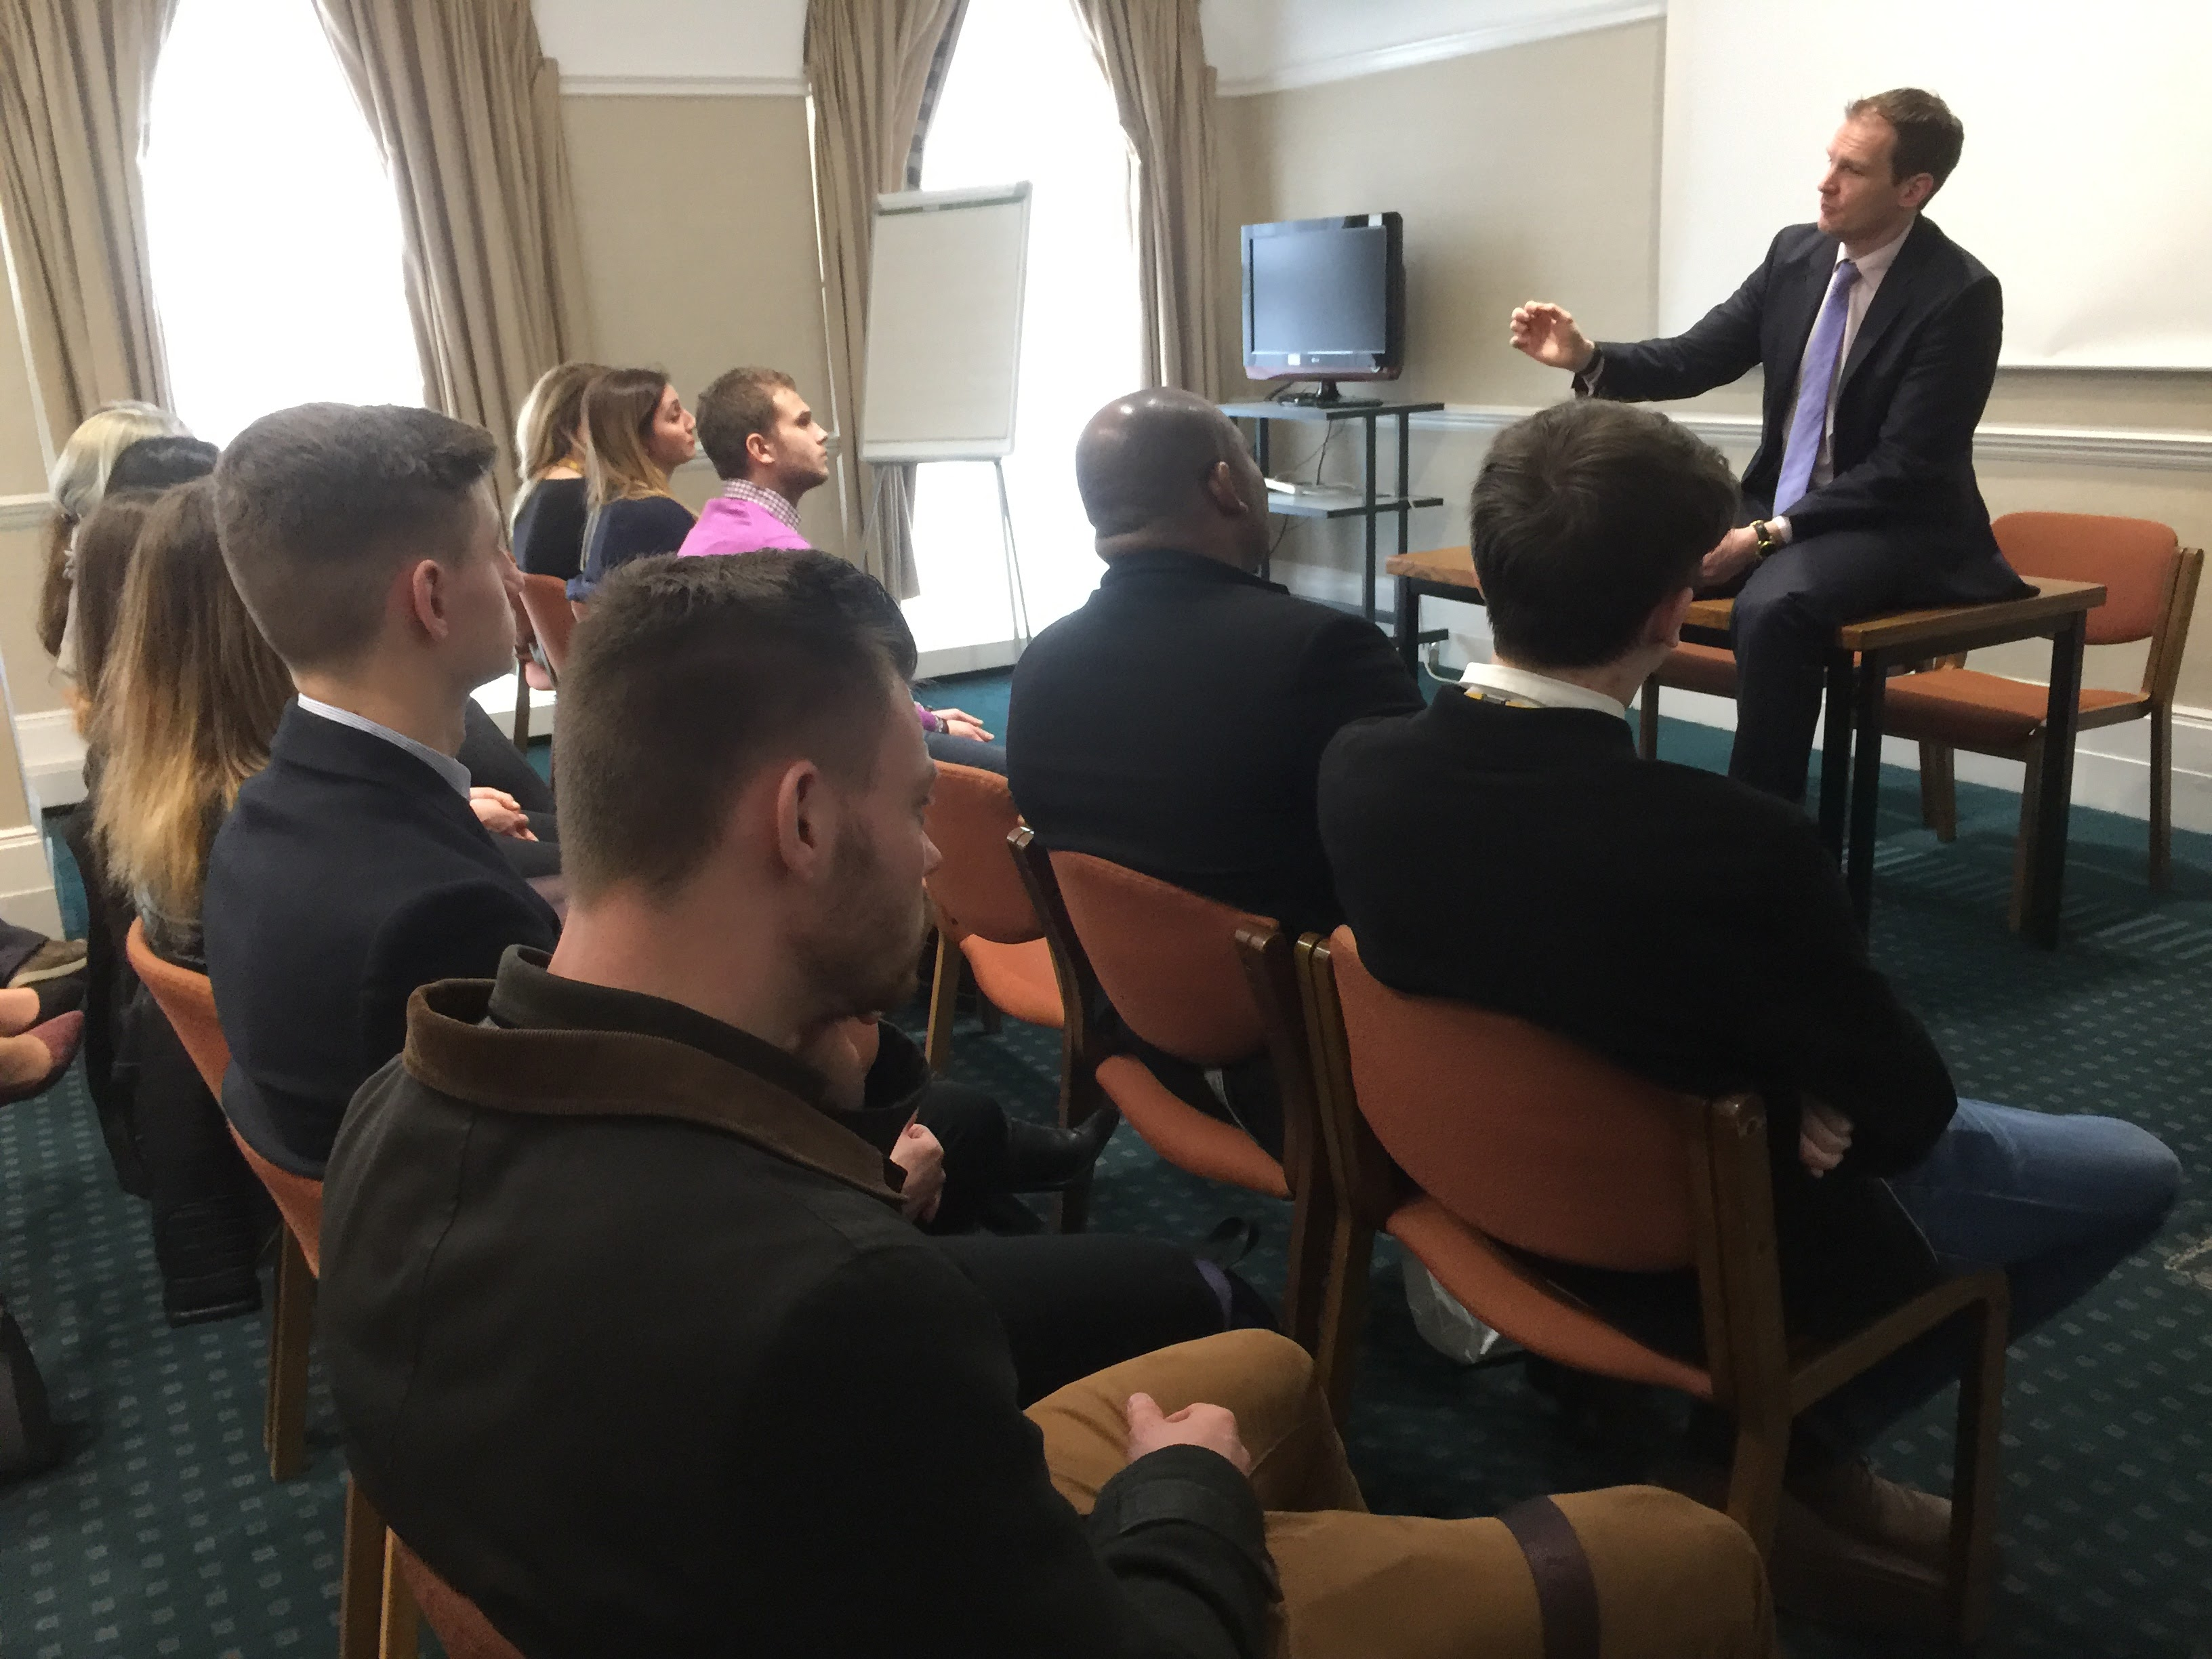 2017-03-29 Dr Dan speaks with students from University of Suffolk